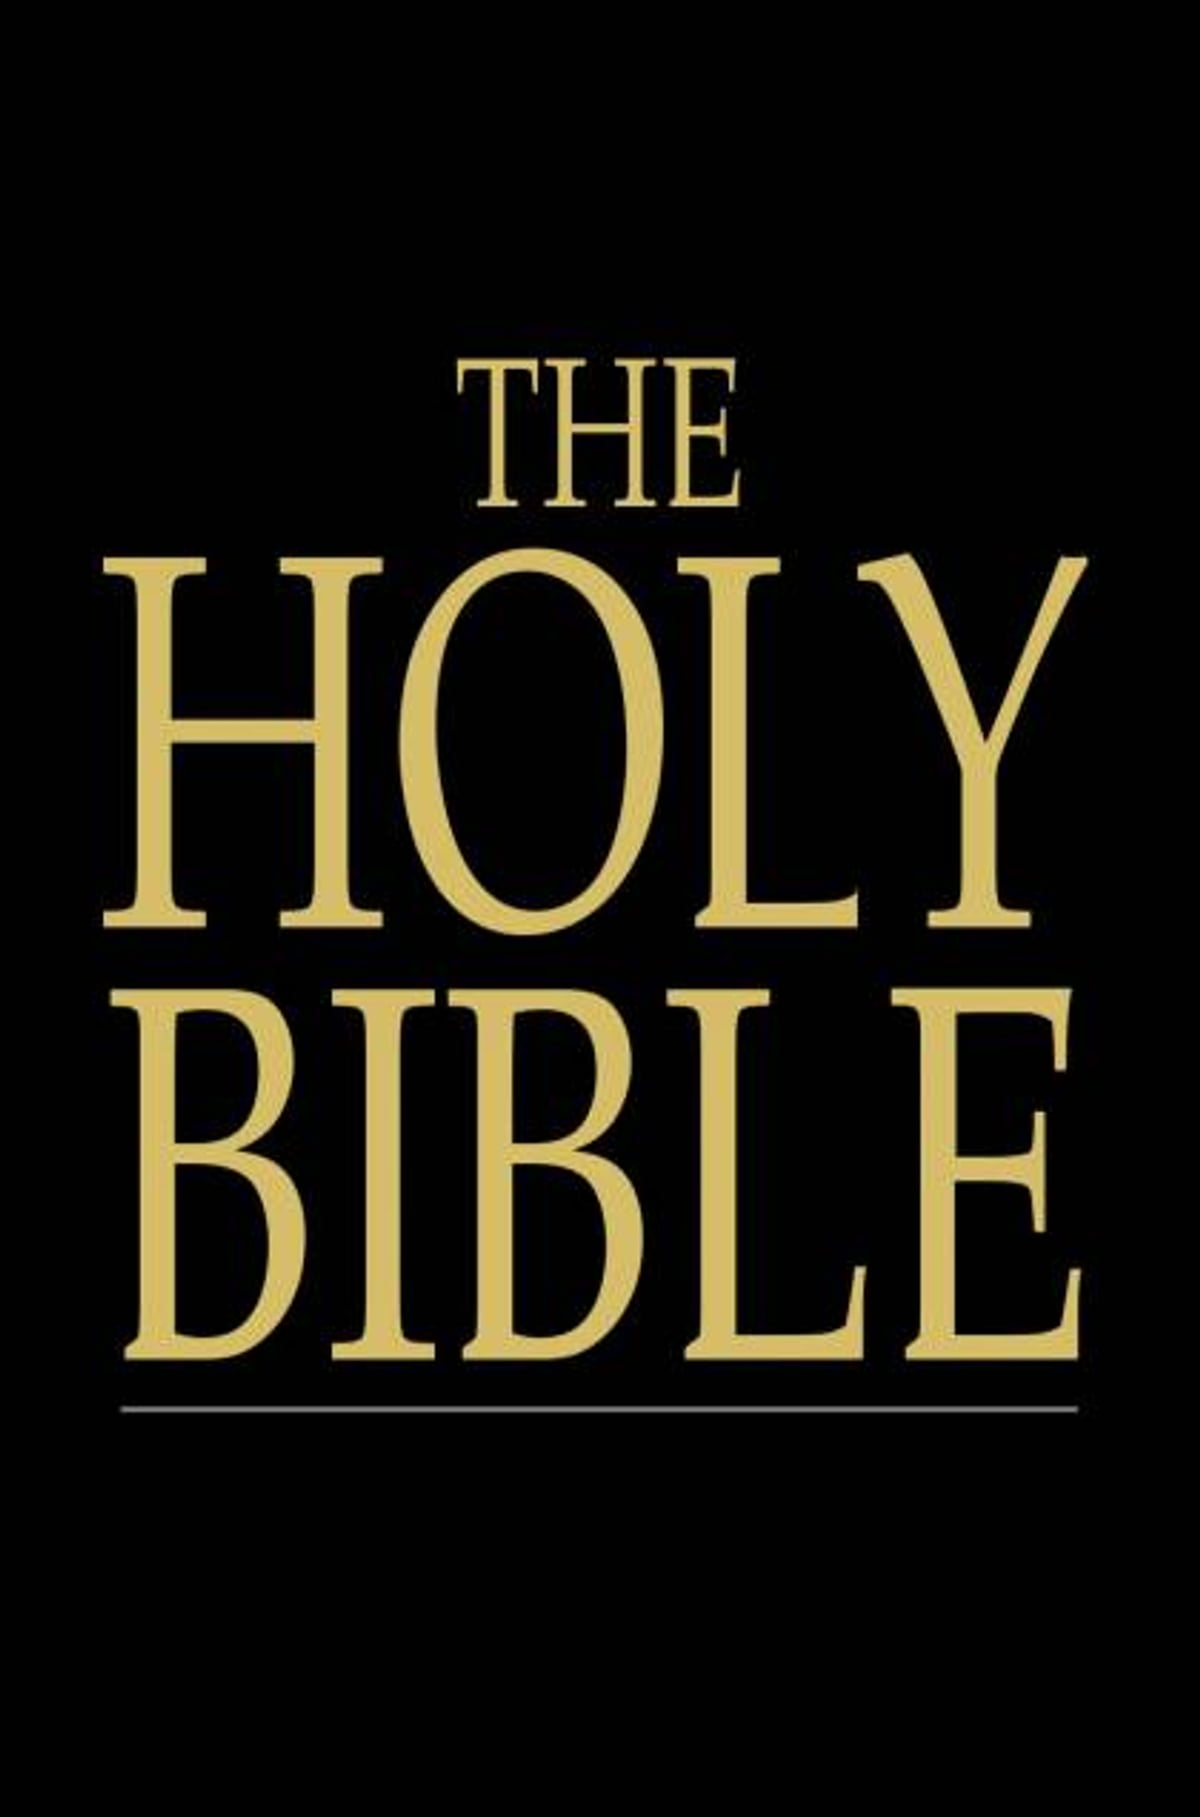 The Holy Bible Old And New Testaments King James Version